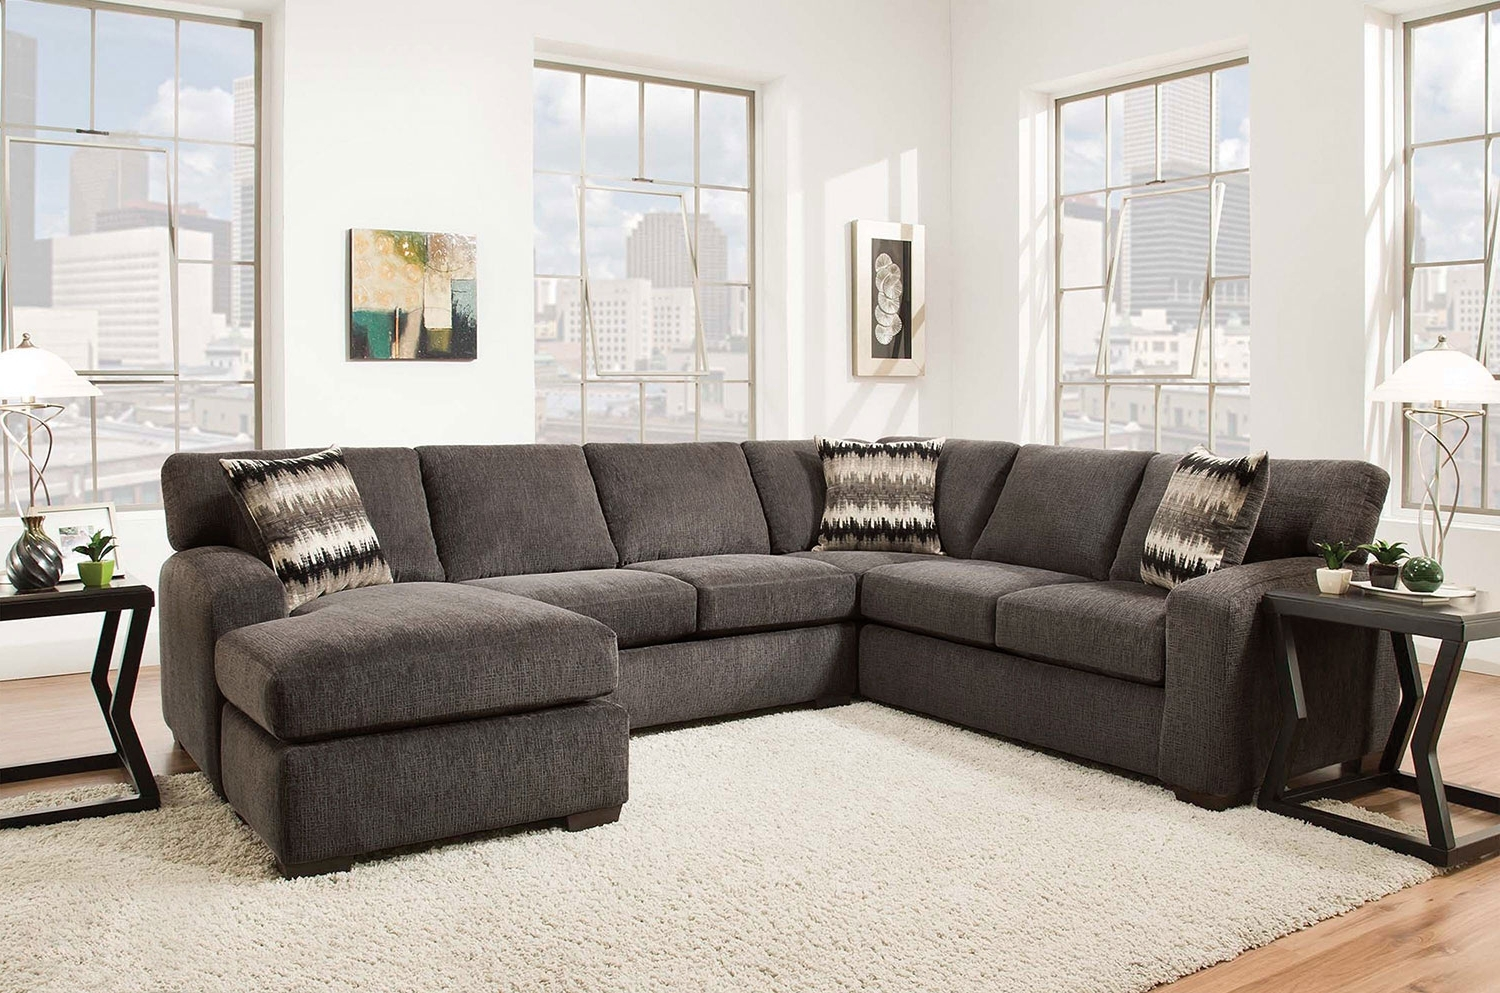 Sectional Sofas Under 600 Pertaining To Latest Fenella 2 Piece Right Facing Sectional – Smoke (View 17 of 20)